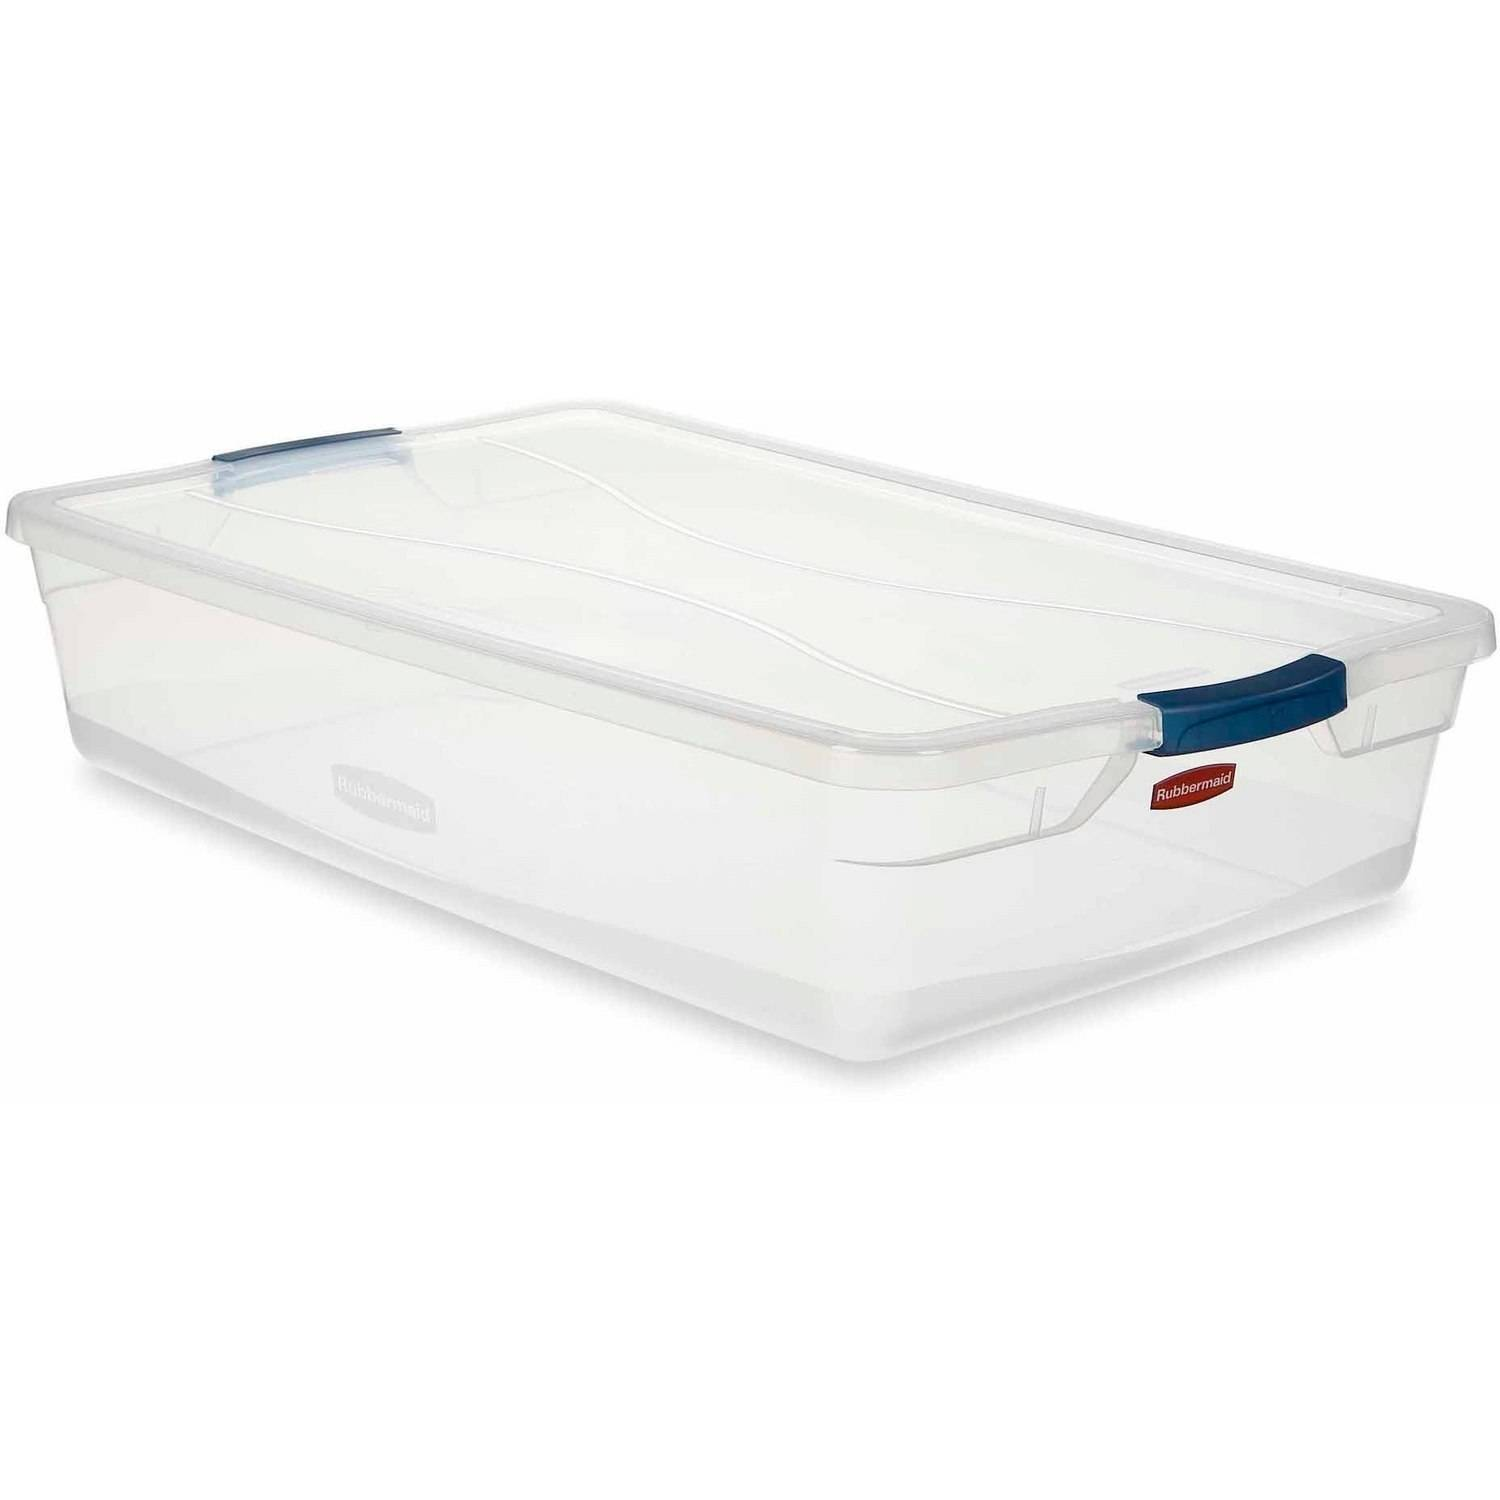 Rubbermaid Clever Store Clears Standard Latch Storage Container 41-qt. Clear with  sc 1 st  Walmart & Rubbermaid Storage Totes